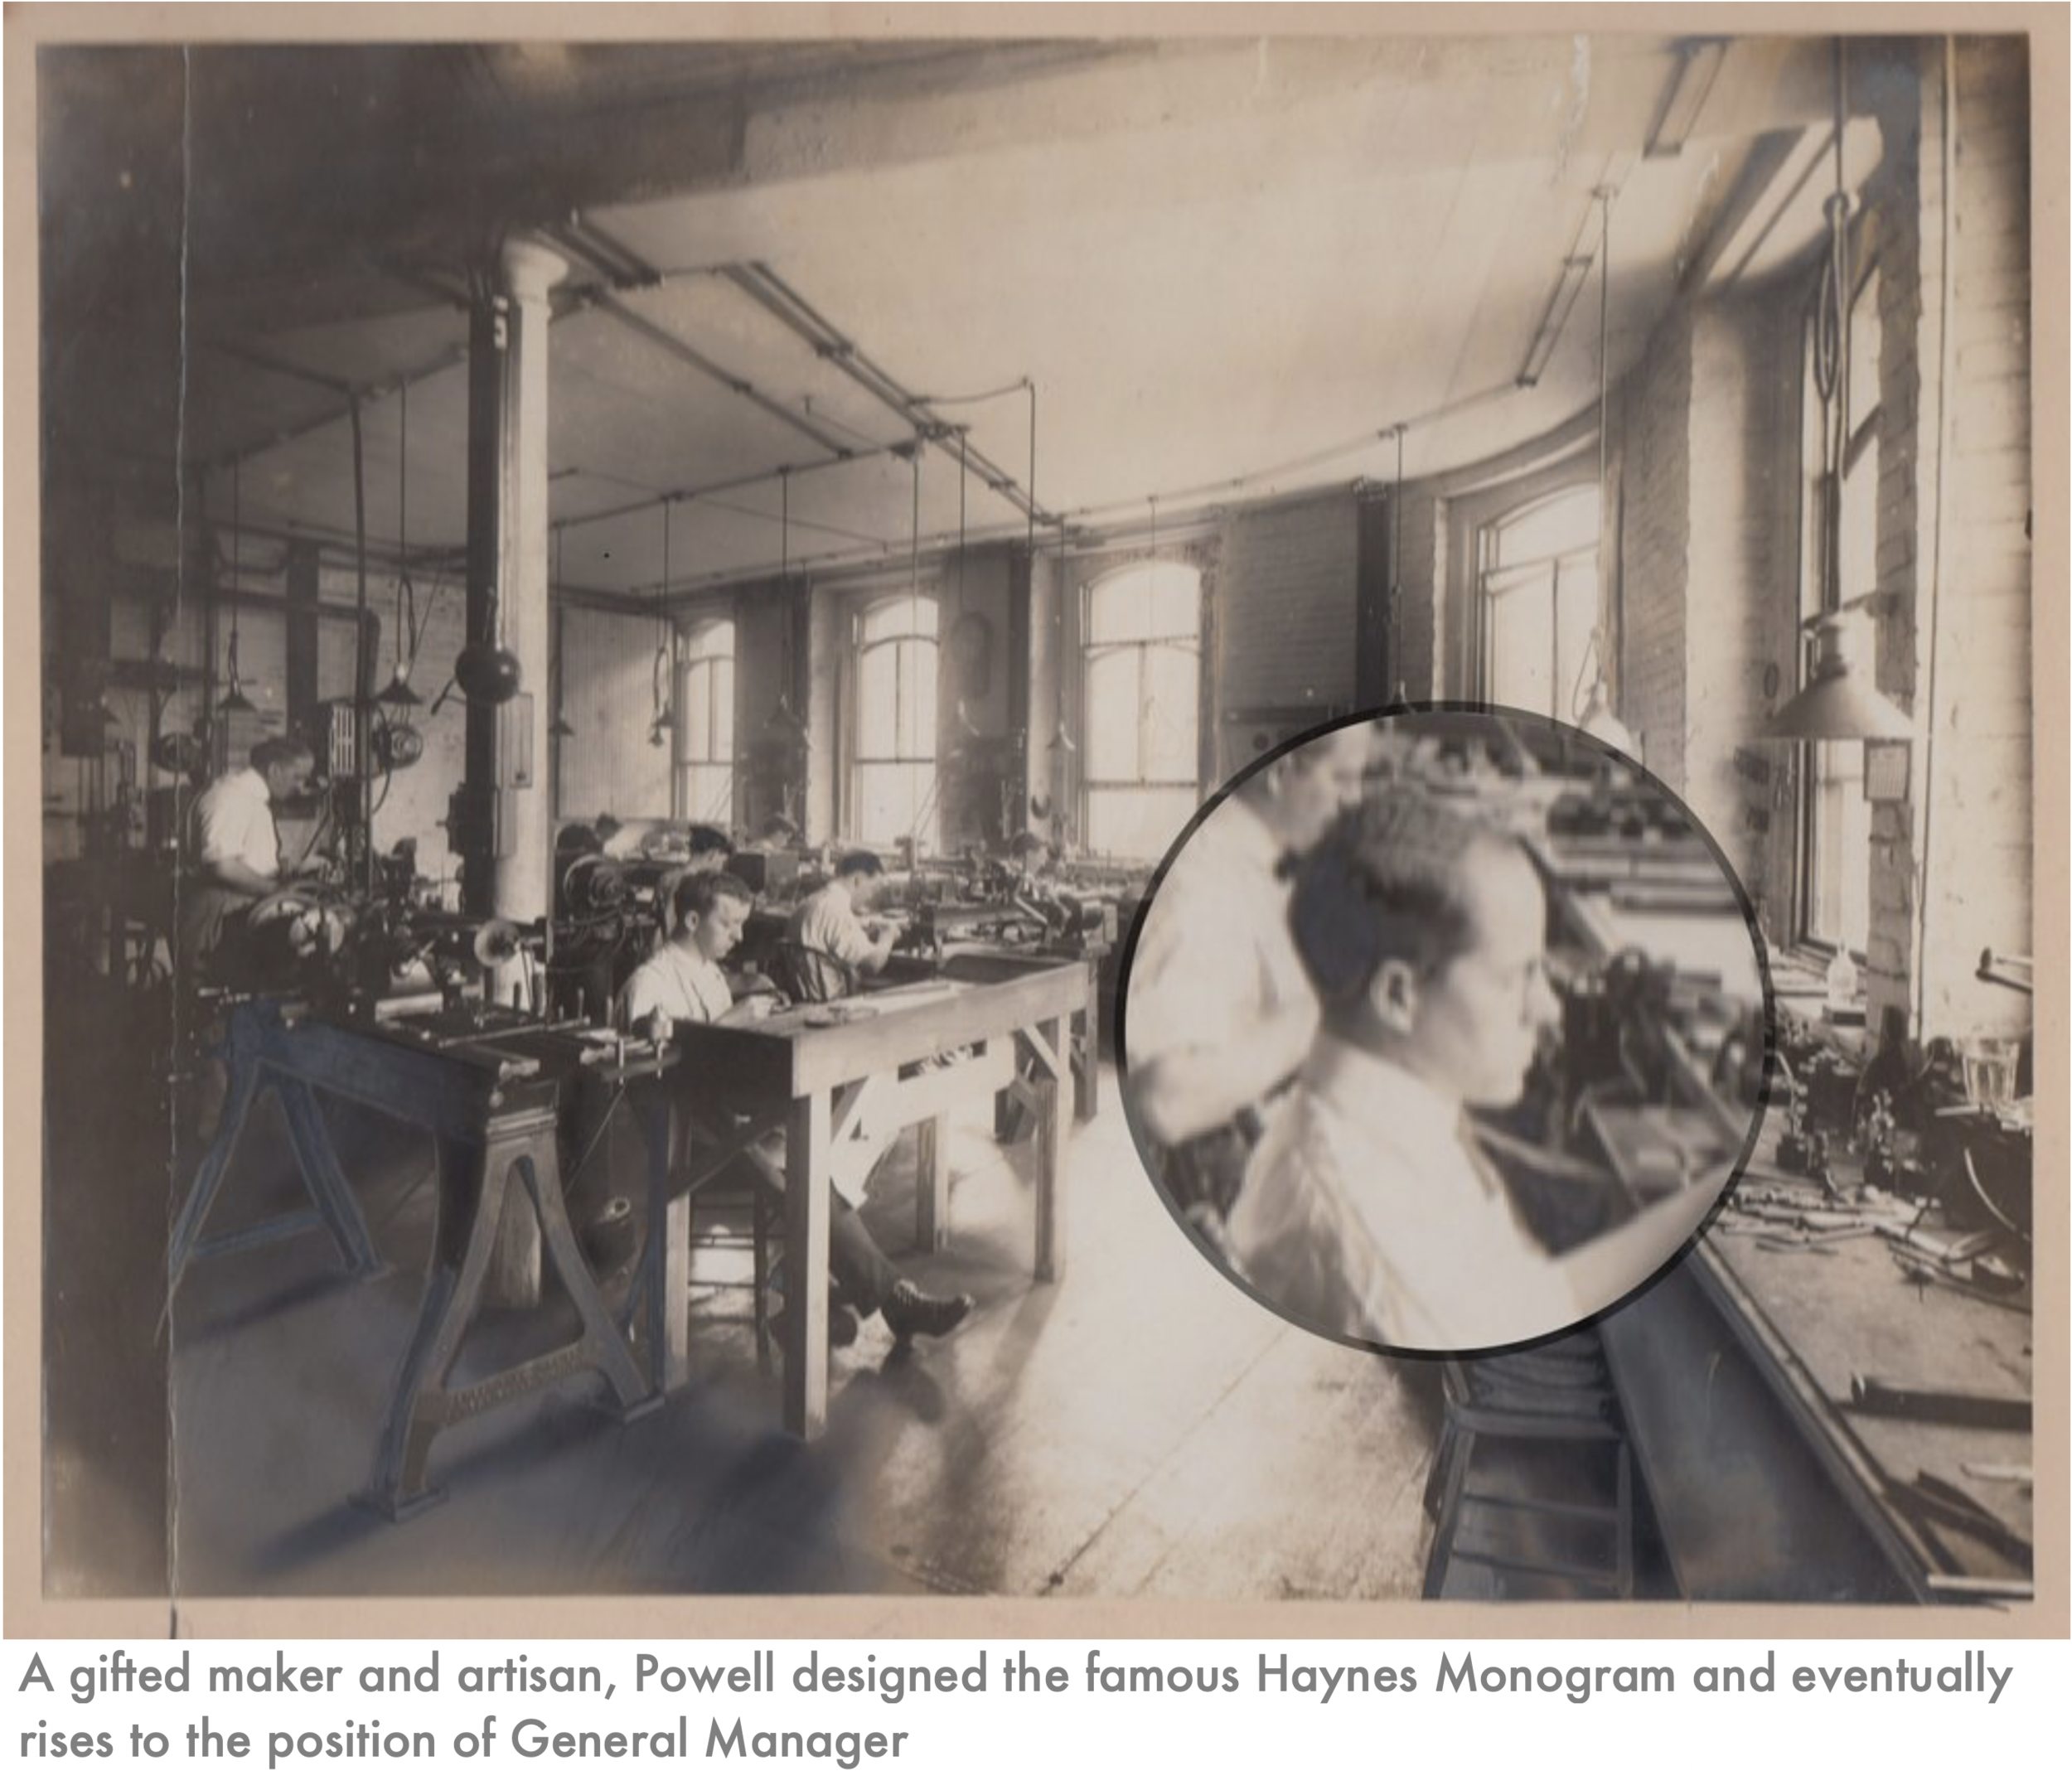 1912 – Haynes Showroom opens at 61 Hanover Street, Boston1913 – Verne Q Powell (pictured) is employed at Wm. S. Haynes Co.1914 – Additional workshop added at Elm Street, Boston1914 – Haynes makes its first all-18K gold flute #2833. -